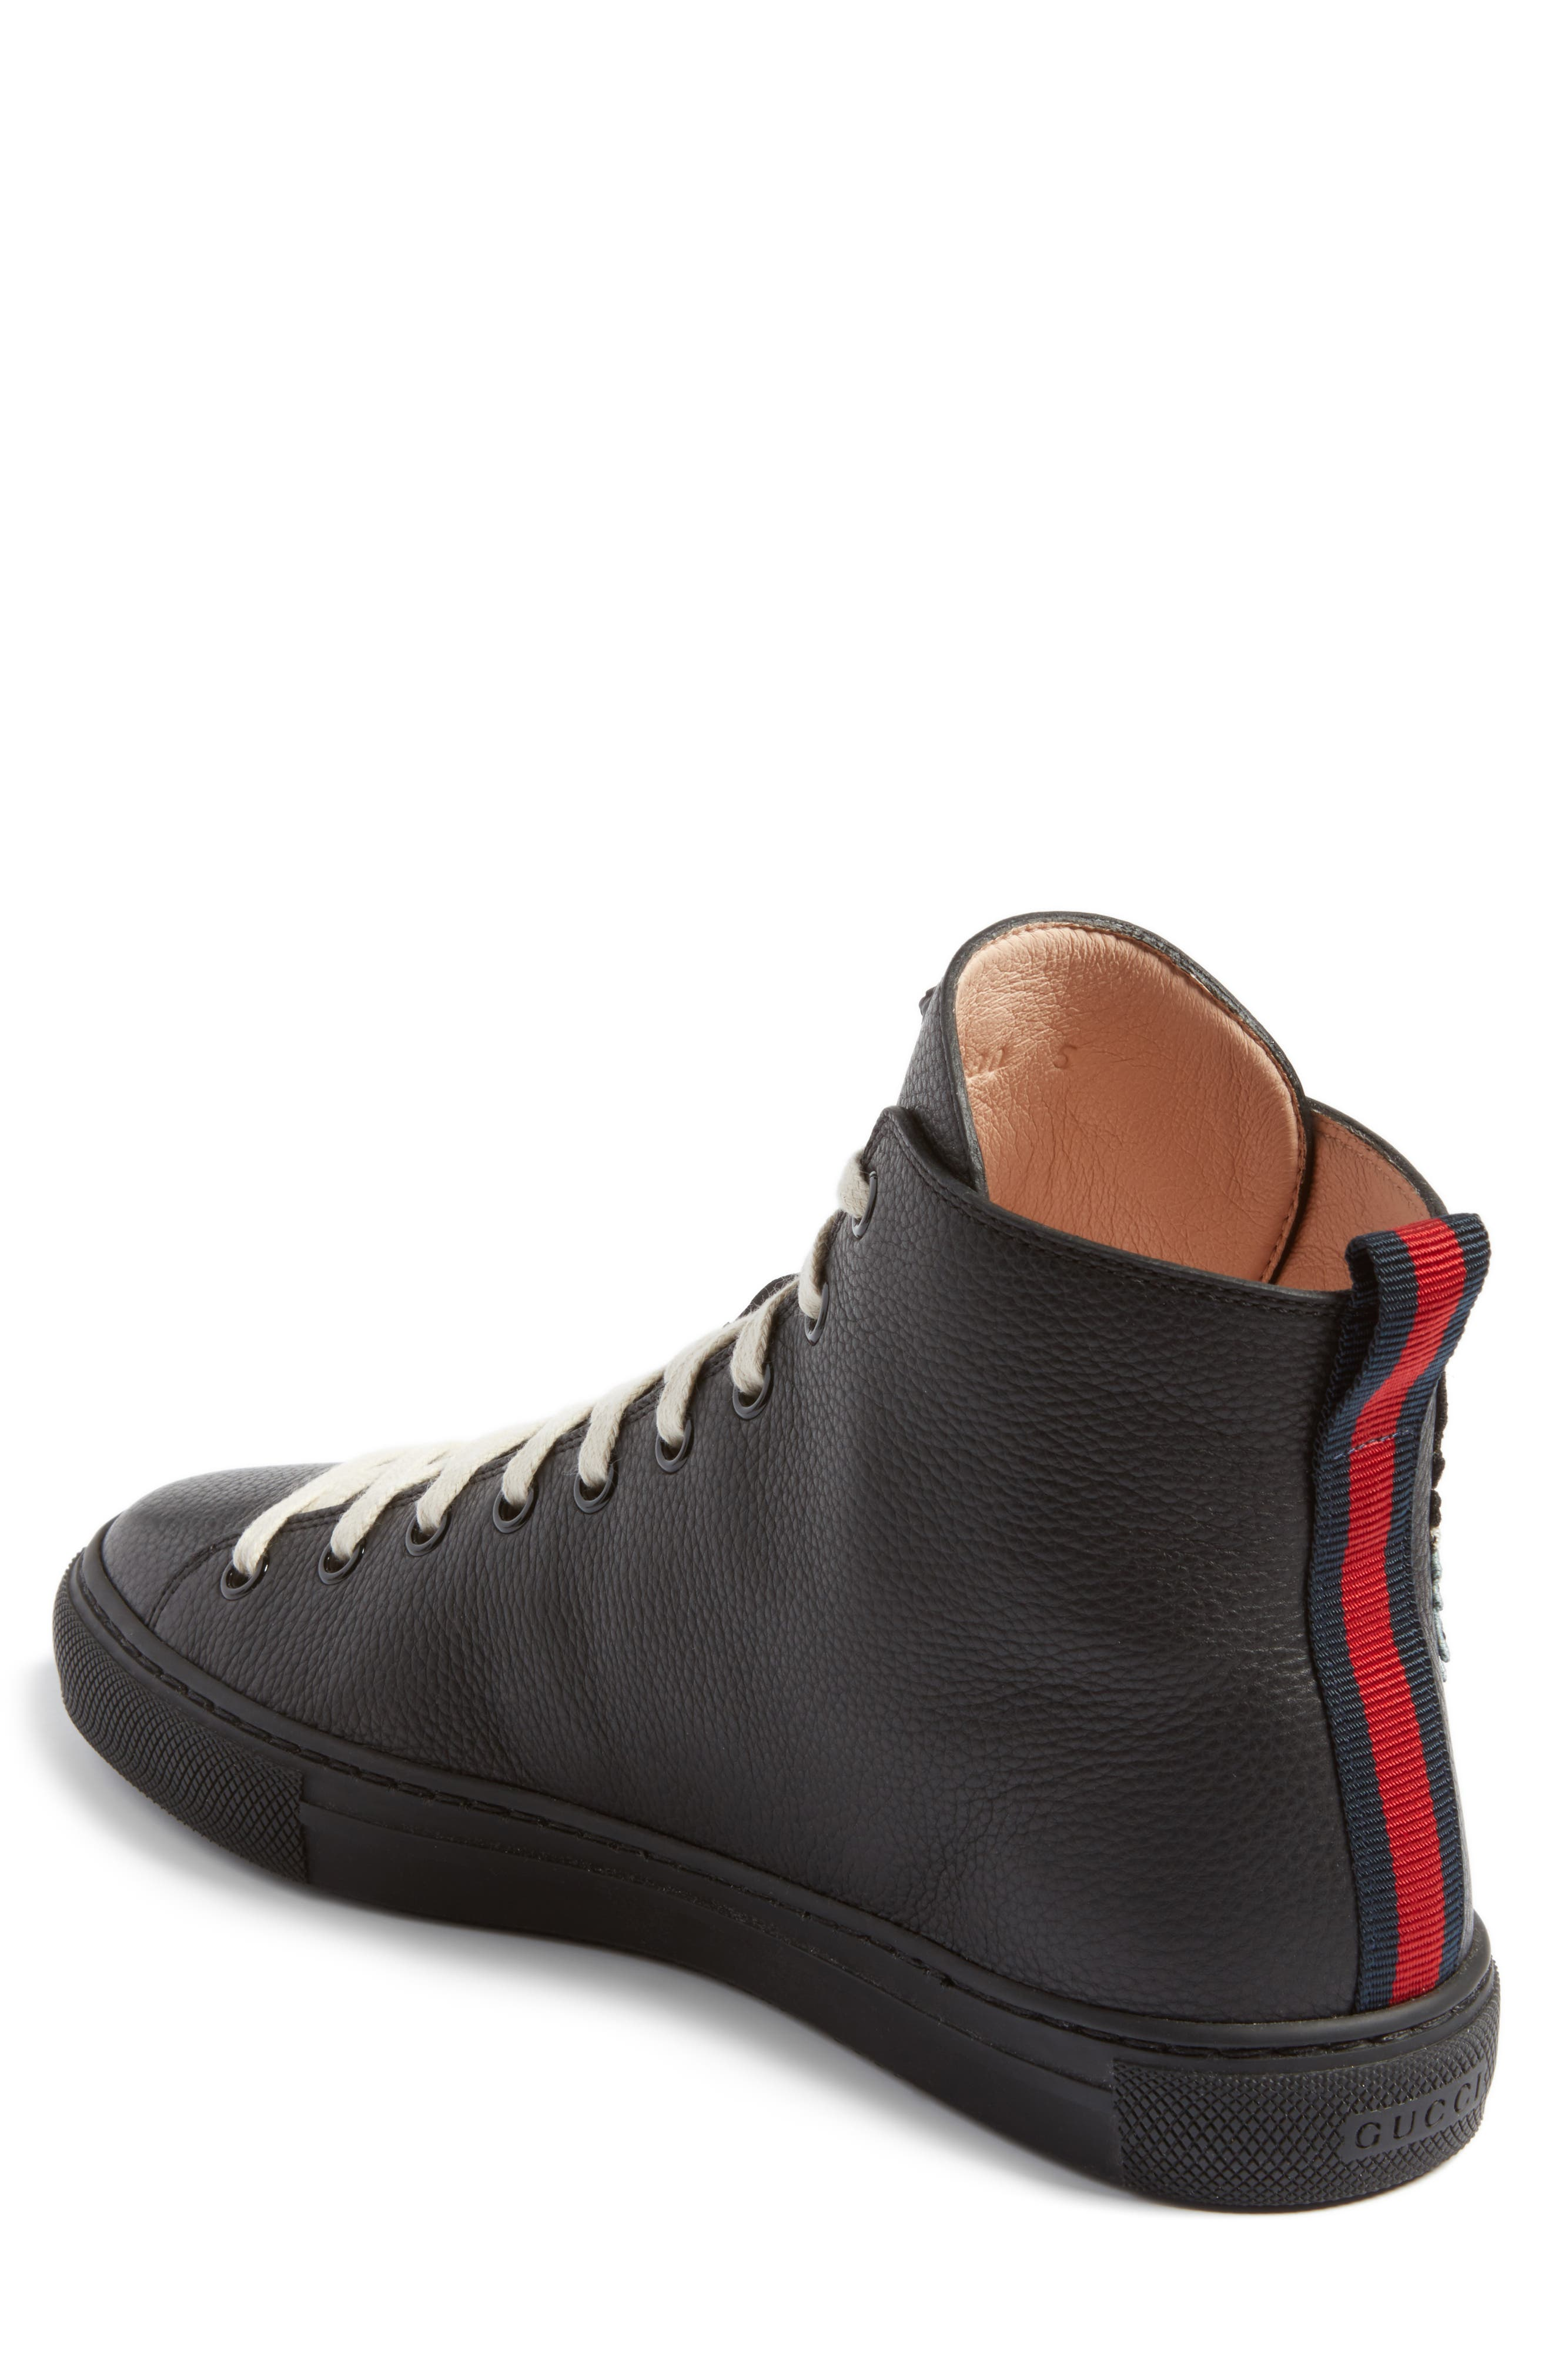 Alternate Image 2  - Gucci Major High Top Sneaker (Men)